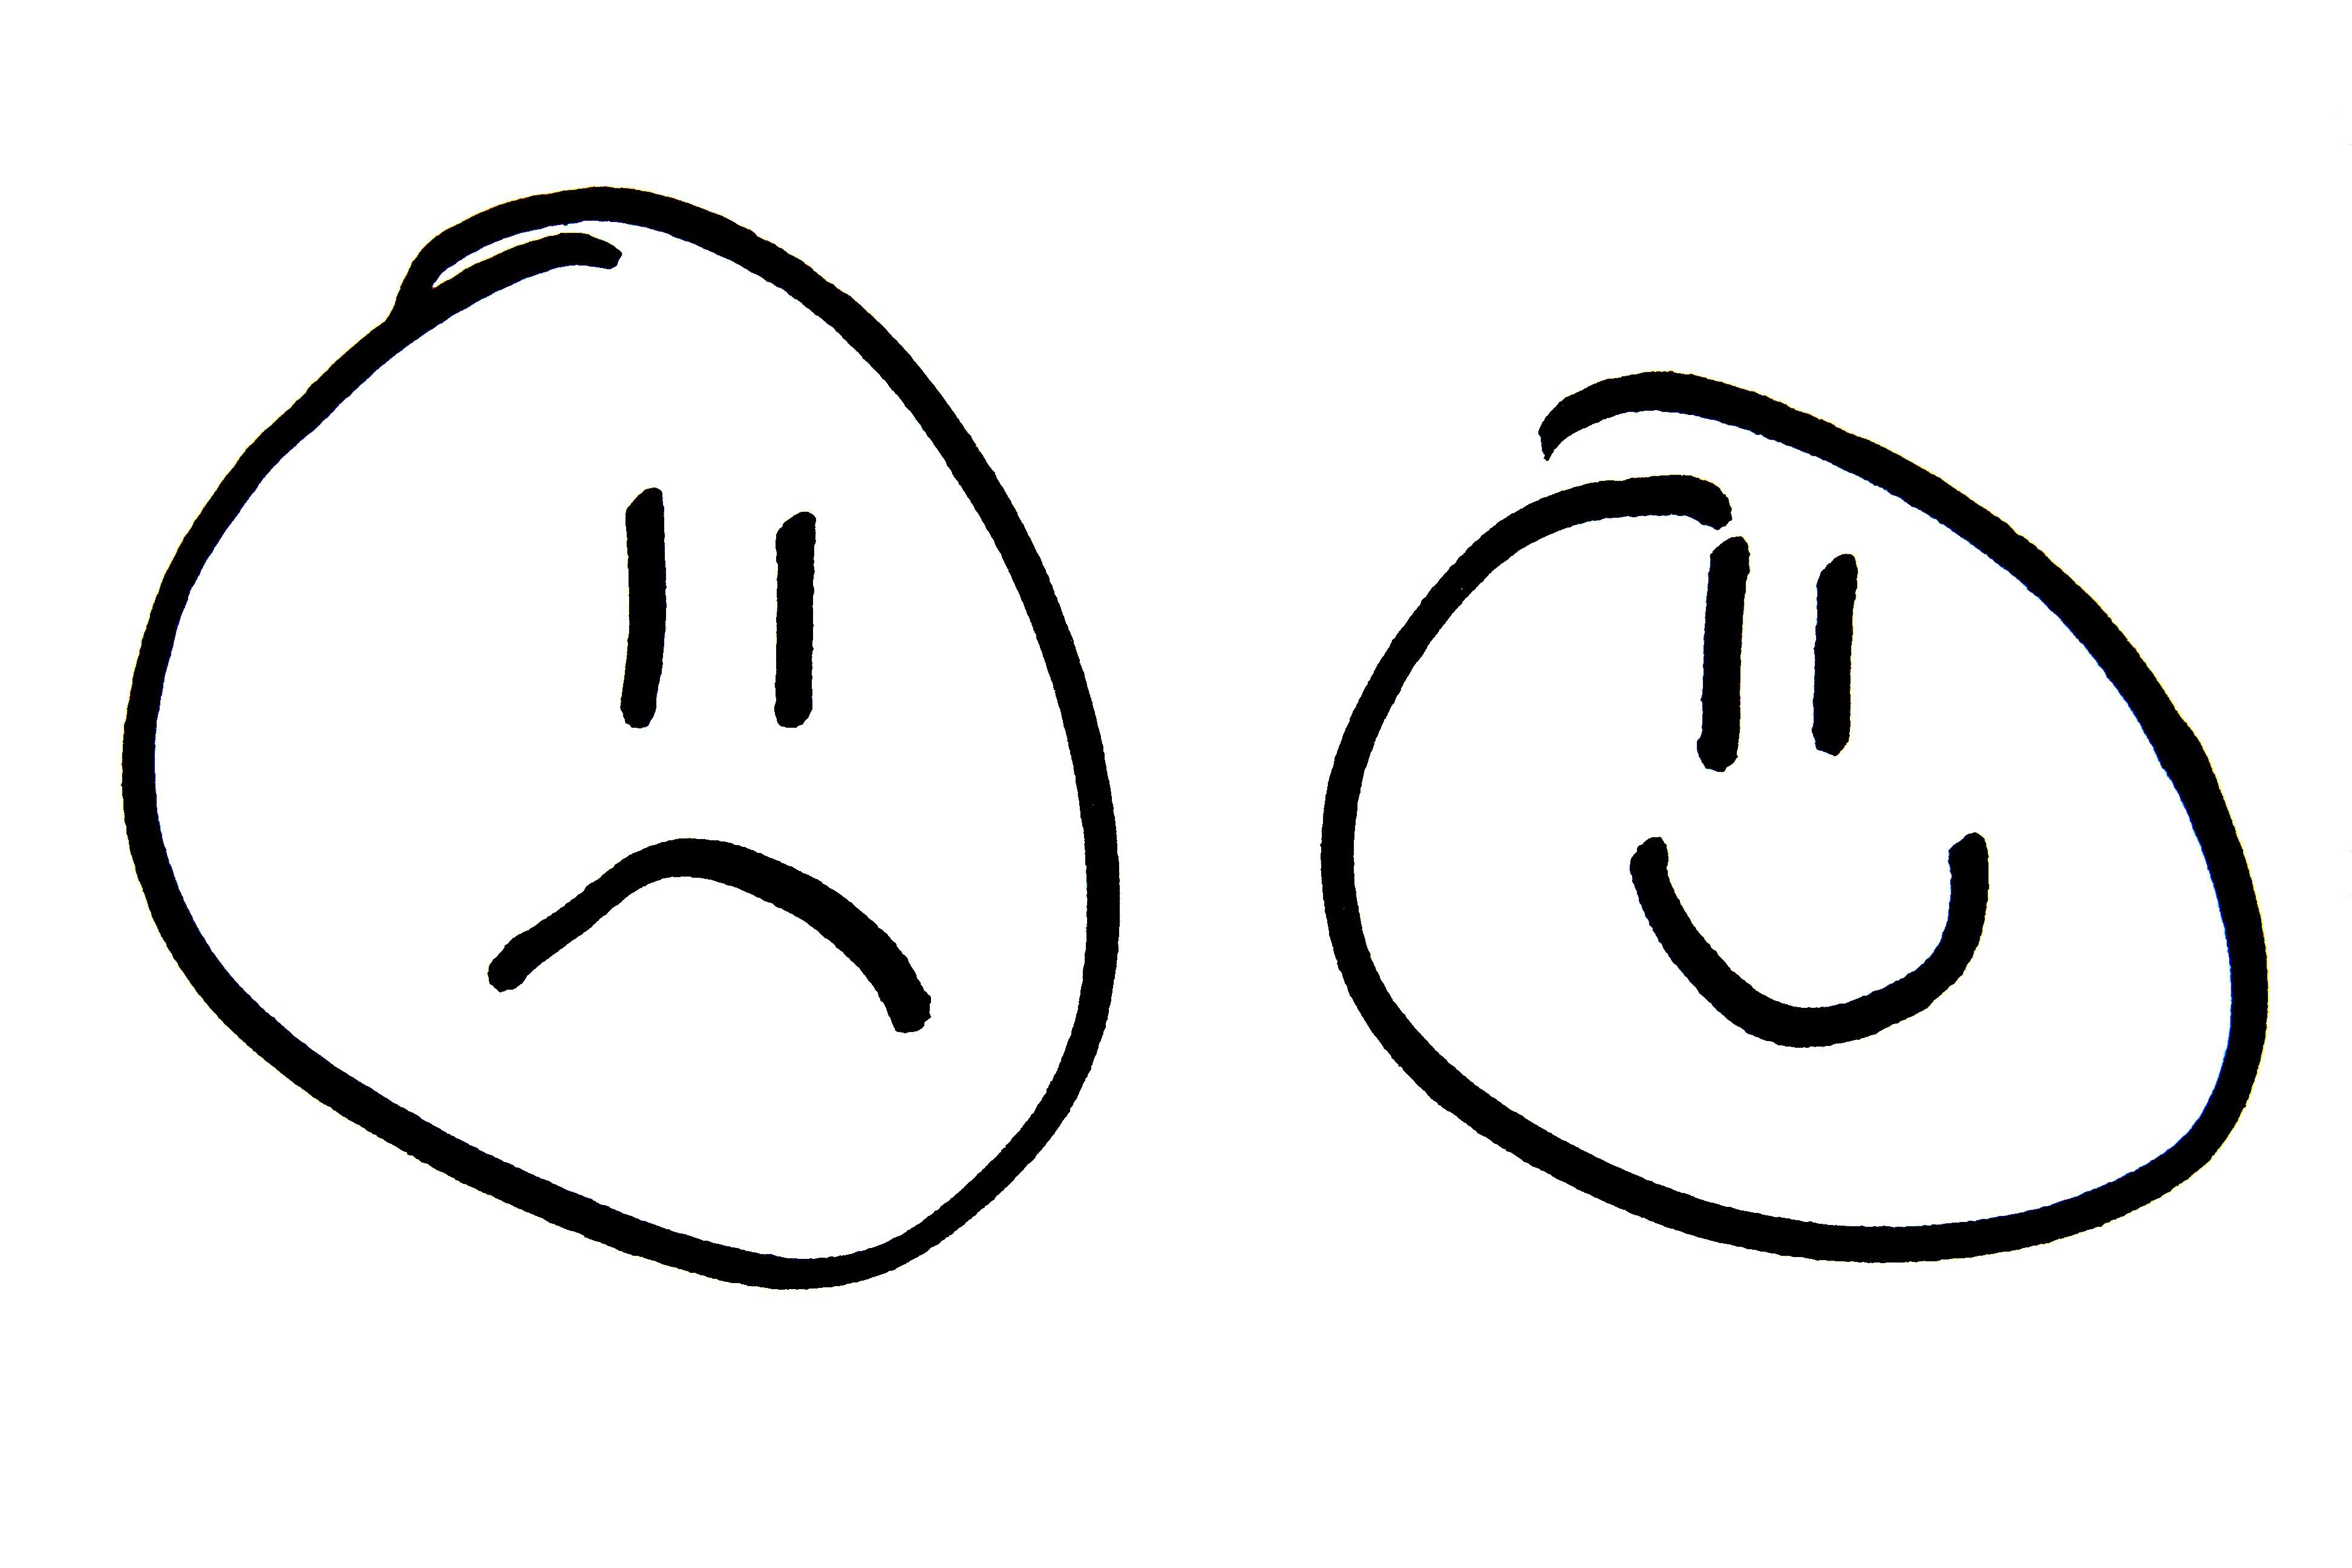 3888x2592 Hd Sad Face Clip Art Image Clipartix Design